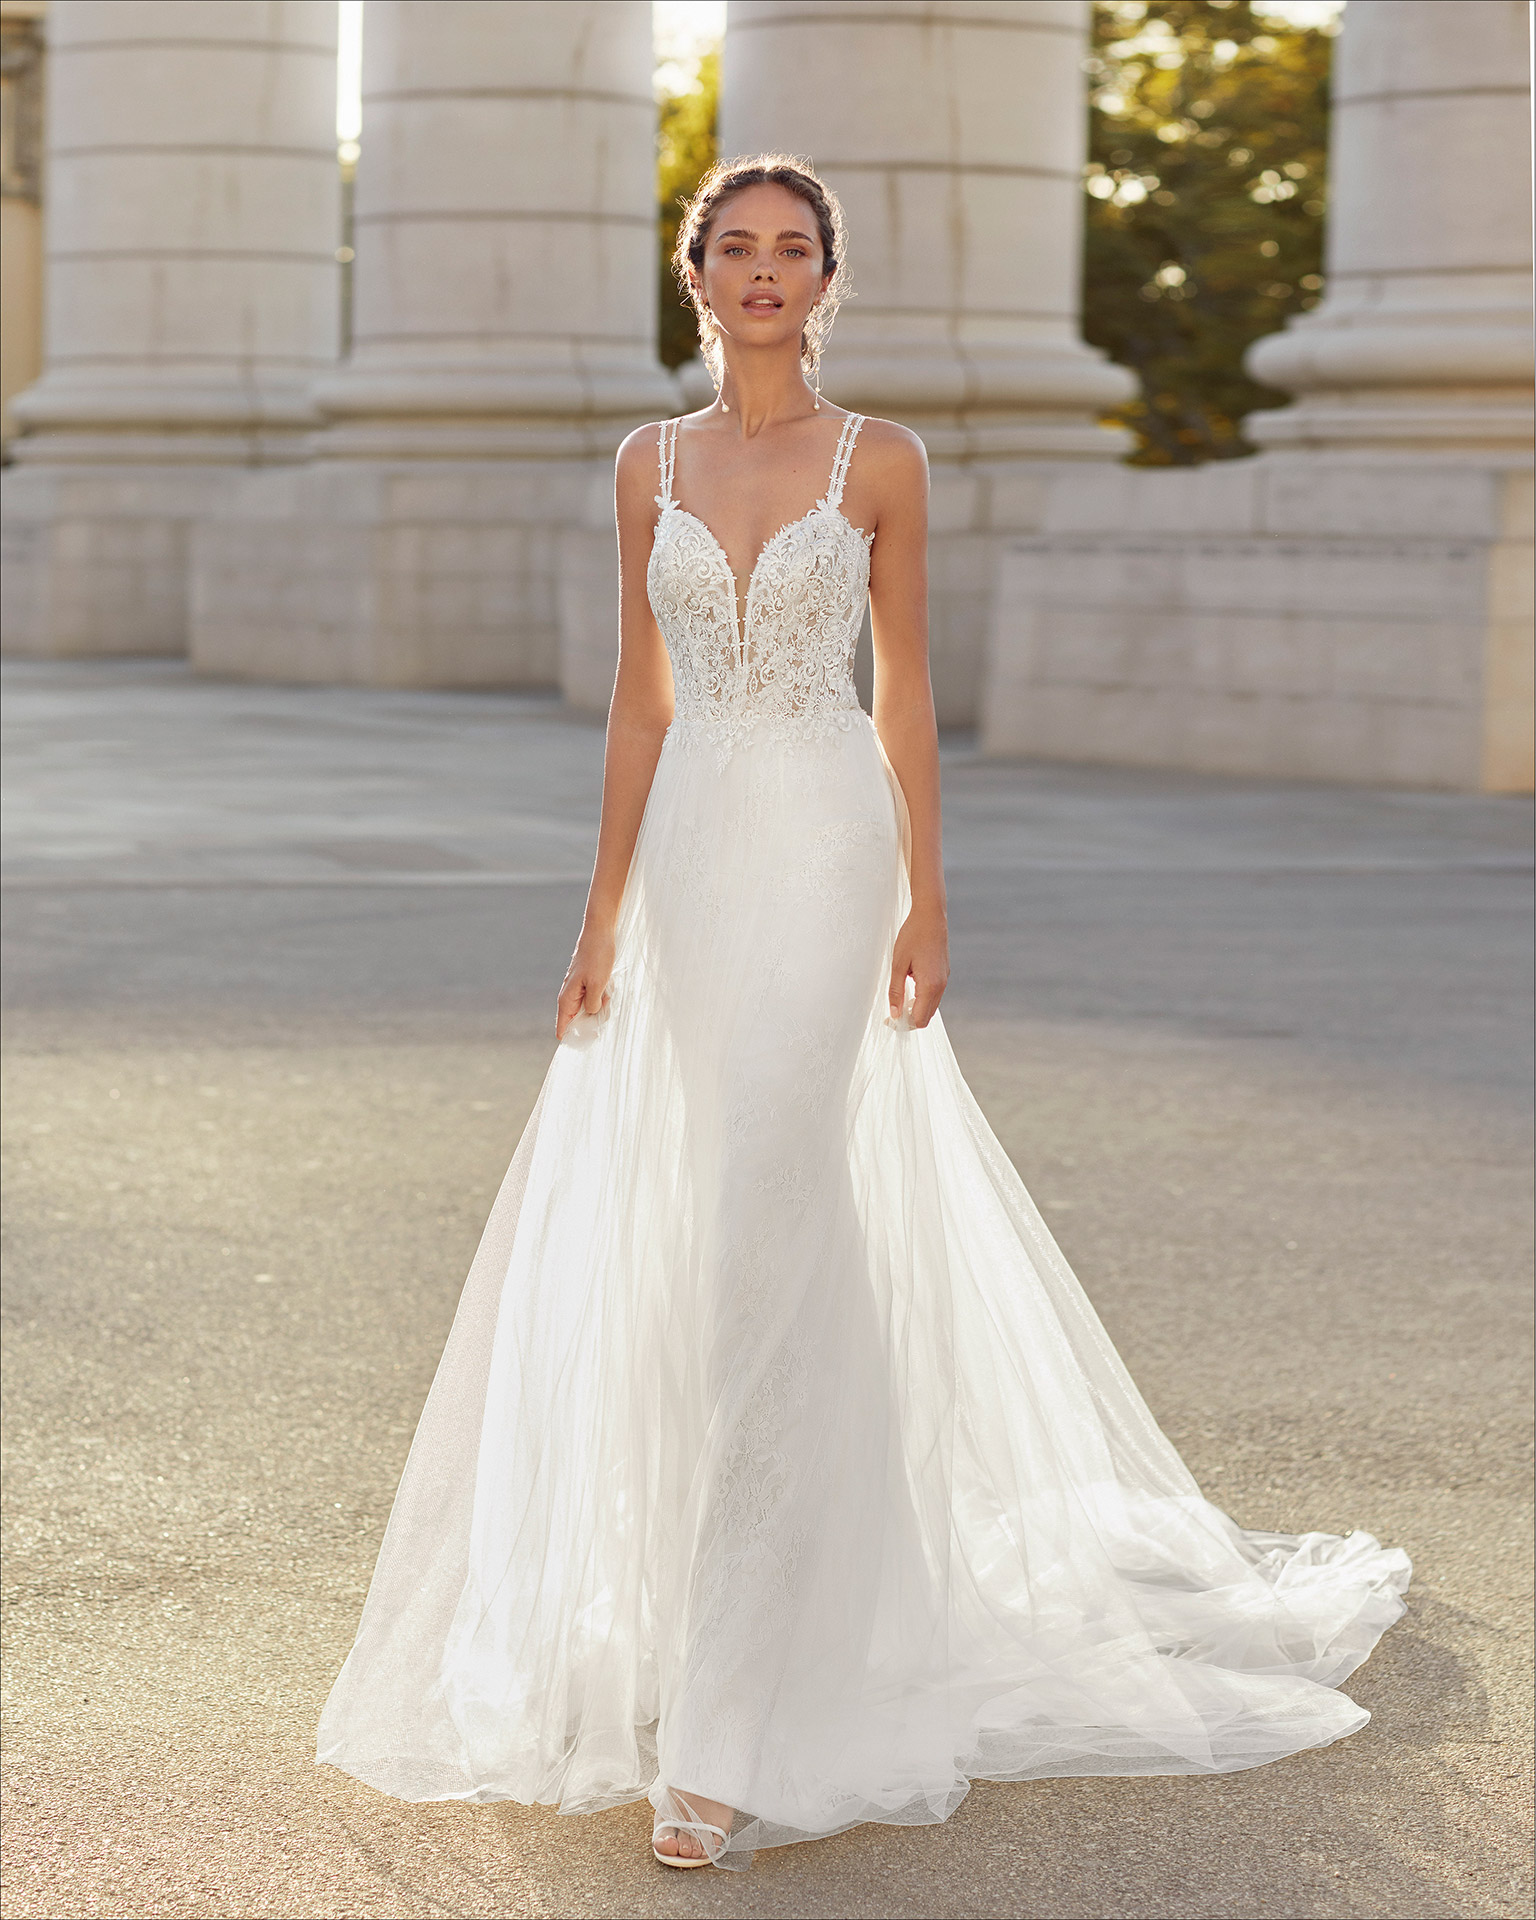 Sheath-style wedding dress in tulle and beaded lace. Deep-plunge neckline and open back with crossover shoulder straps. 2021  Collection.